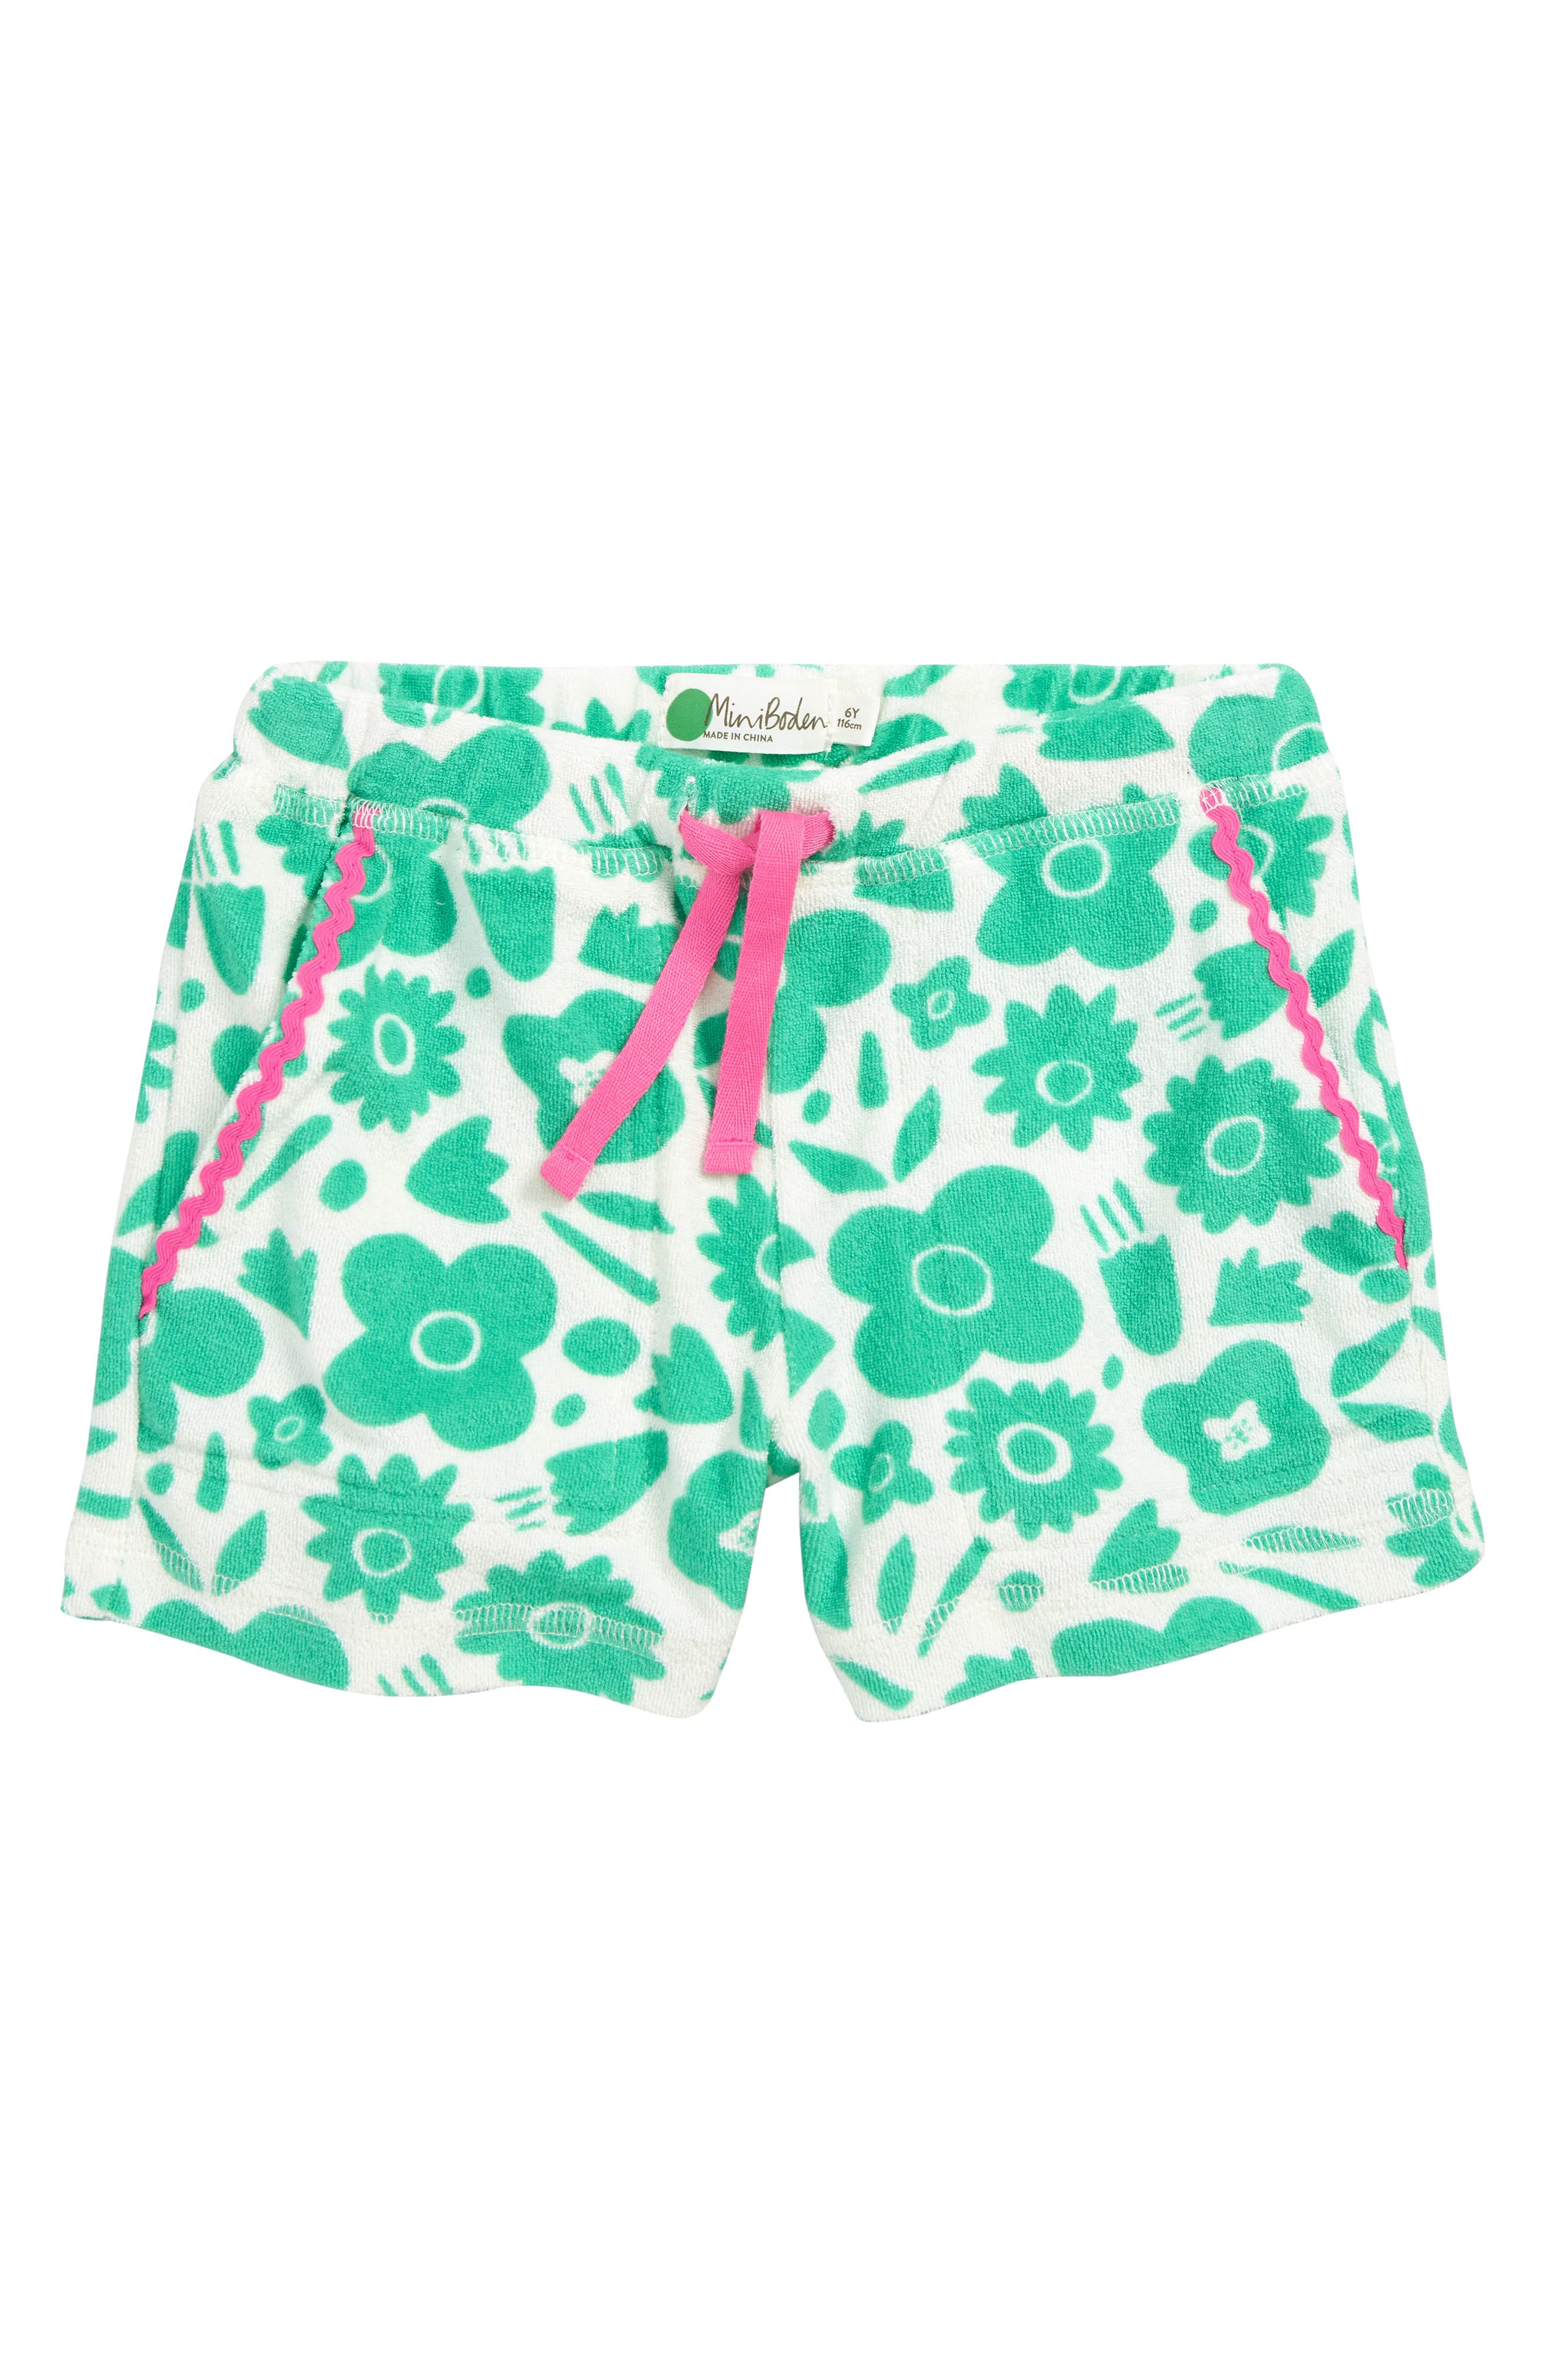 MINI BODEN, Terry Cloth Shorts, Main thumbnail 1, color, GRN JUNGLE GREEN POP FLORAL